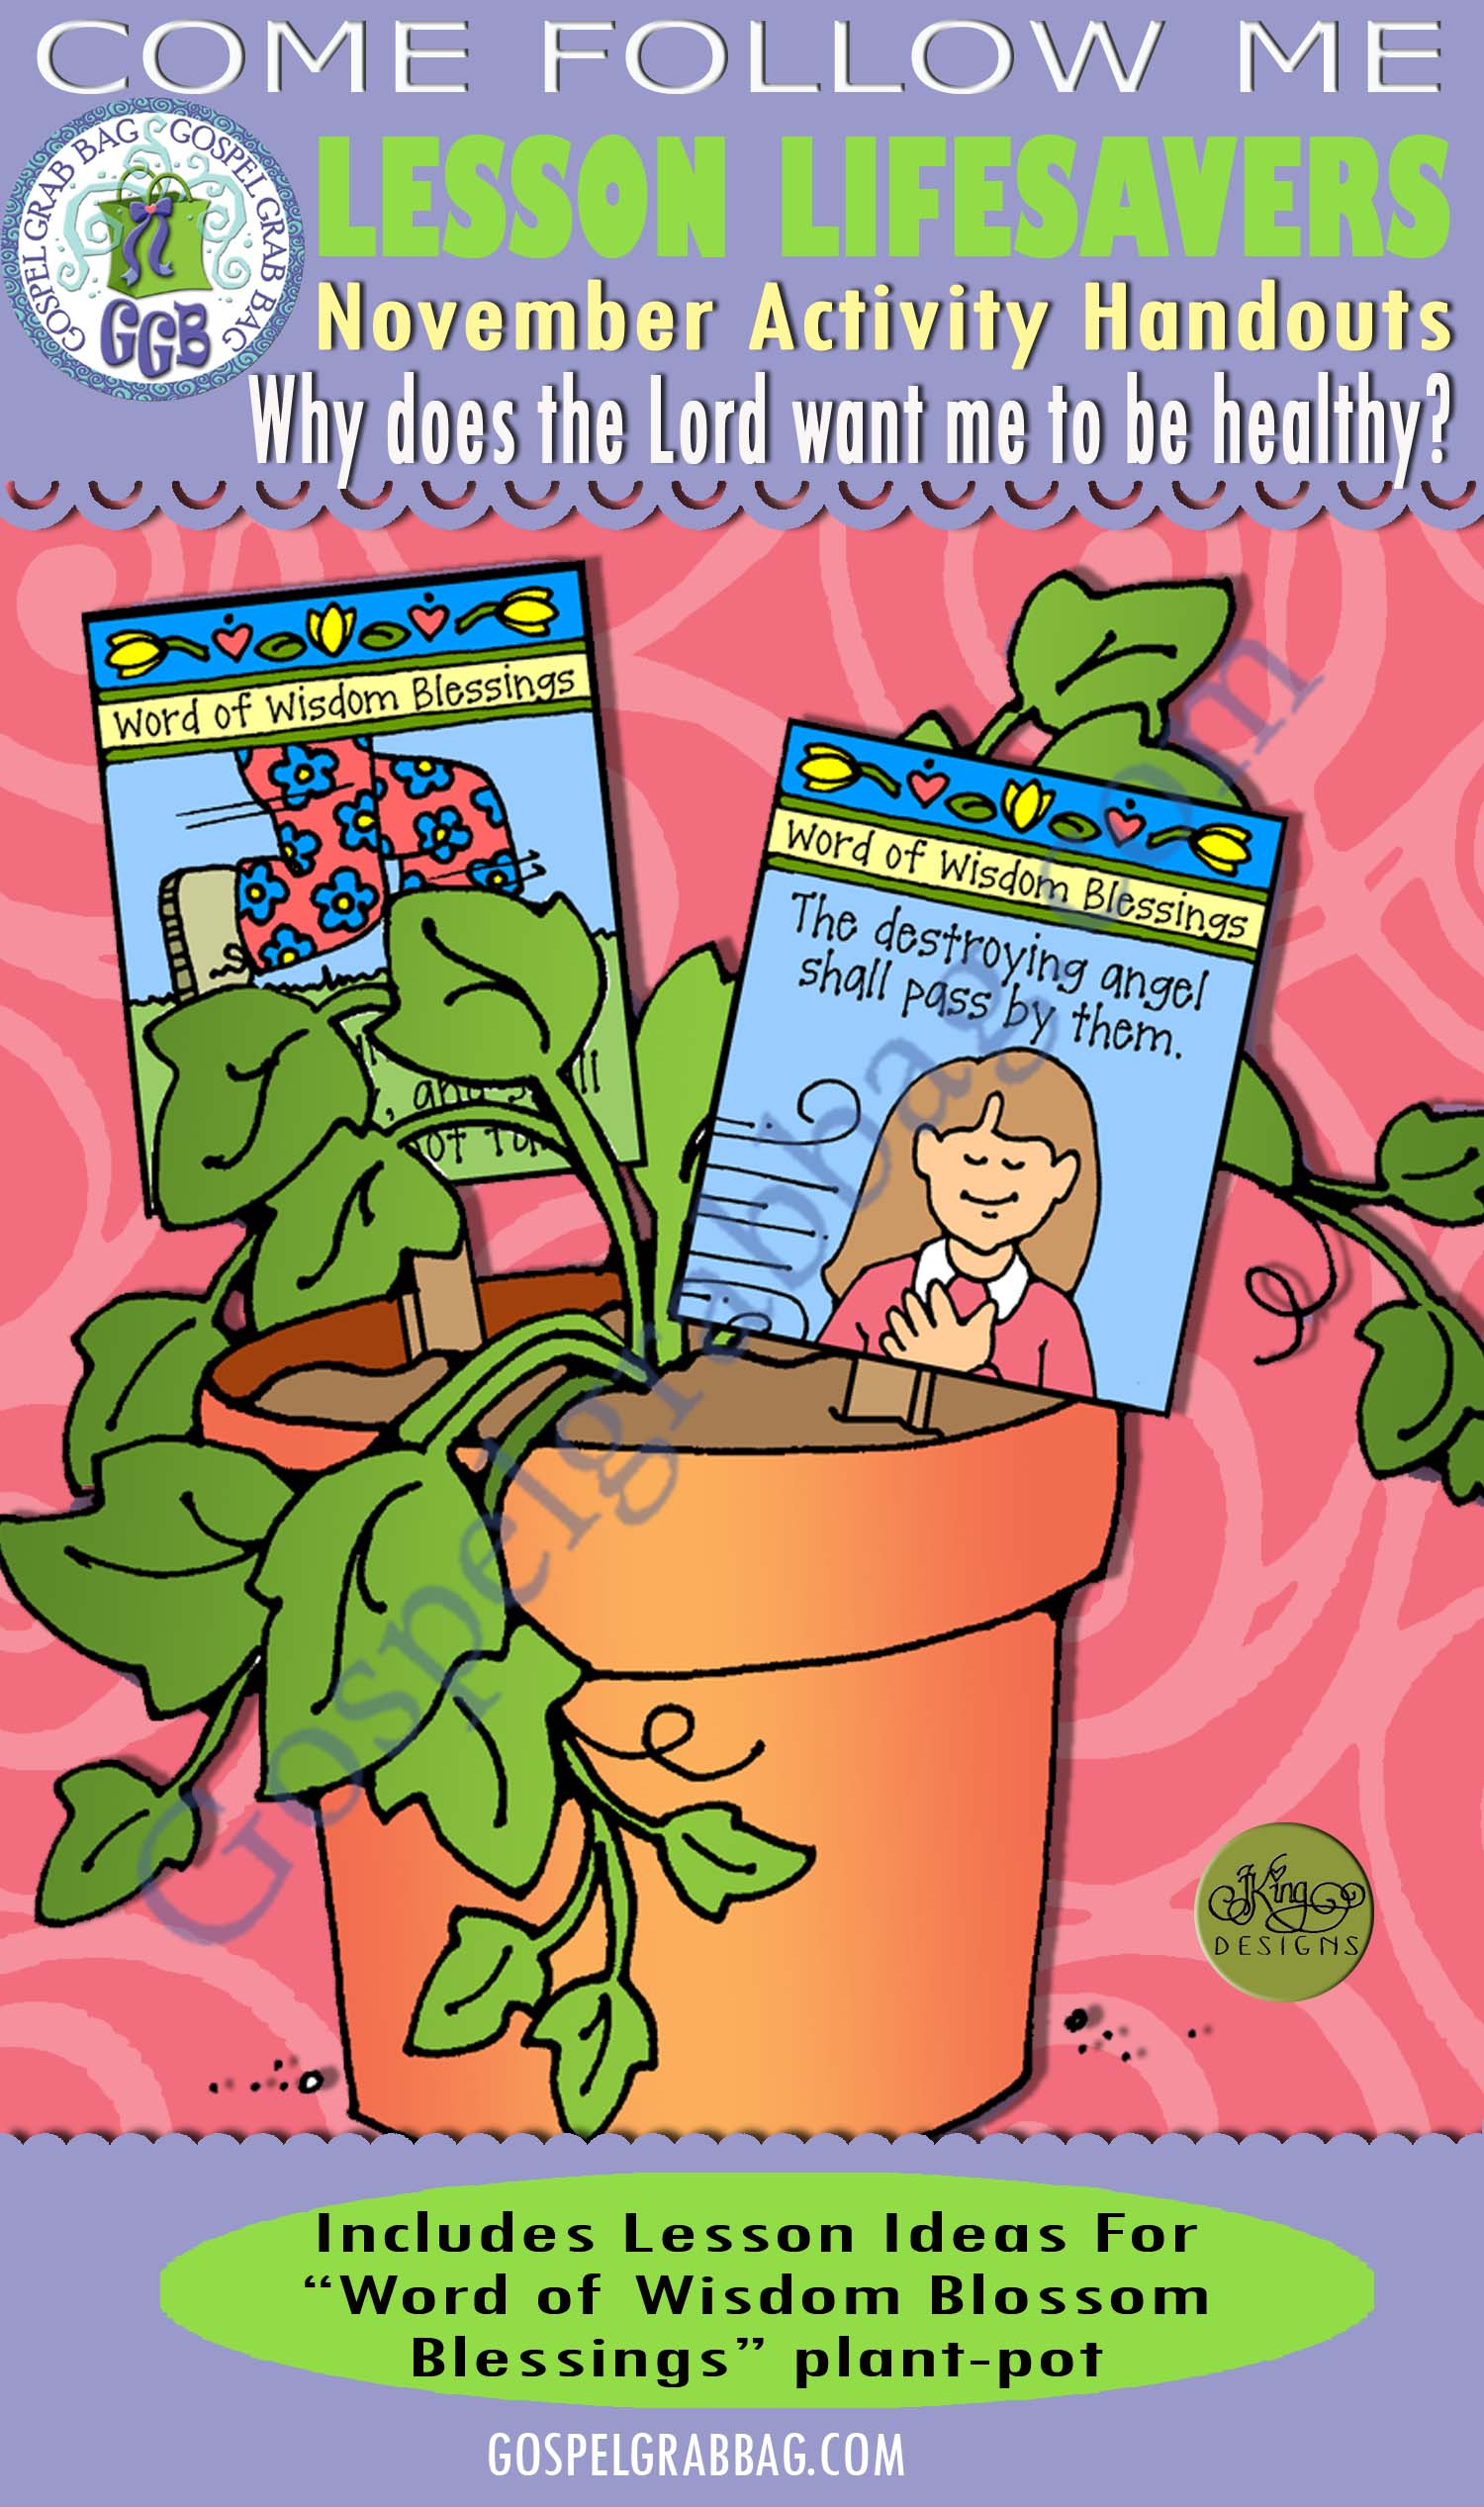 "$4.00 November Lesson 5 - Come Follow Me ""Why does the Lord want me to be healthy?"" ACTIVITY: Word of Wisdom - Blossom Blessings healthy plant pot"